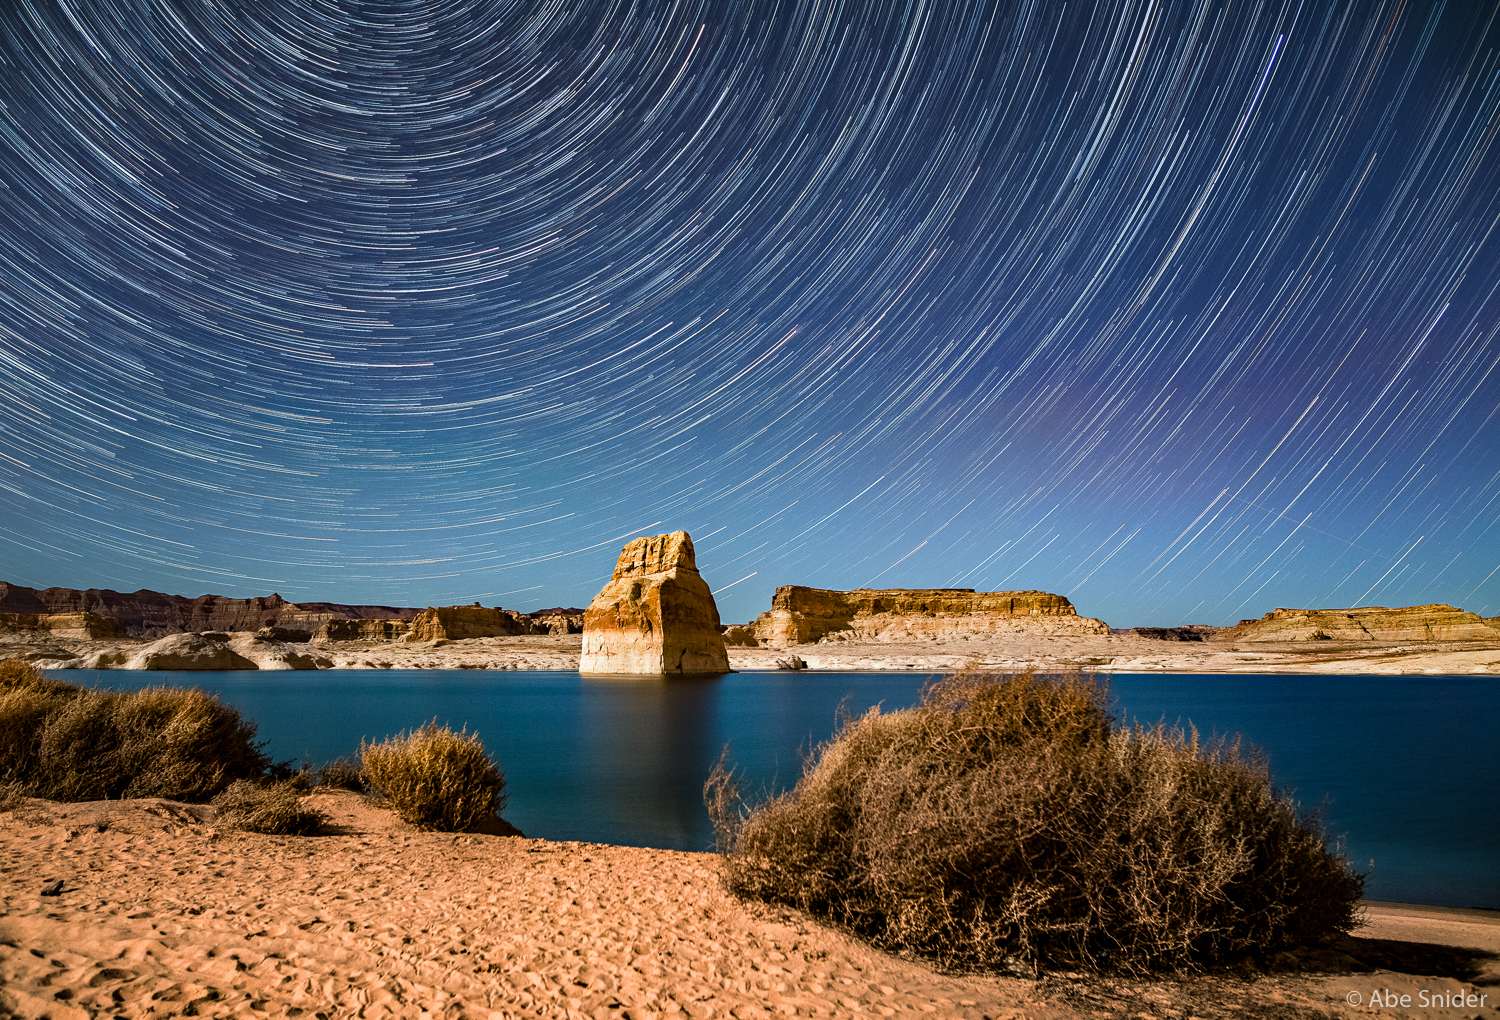 This image was my very first star trail image taken at Lake Powell on Valentines Day when me and Tiffany were camping by the lake. The landscape is lit up from moonlight which gives it a very different effect.